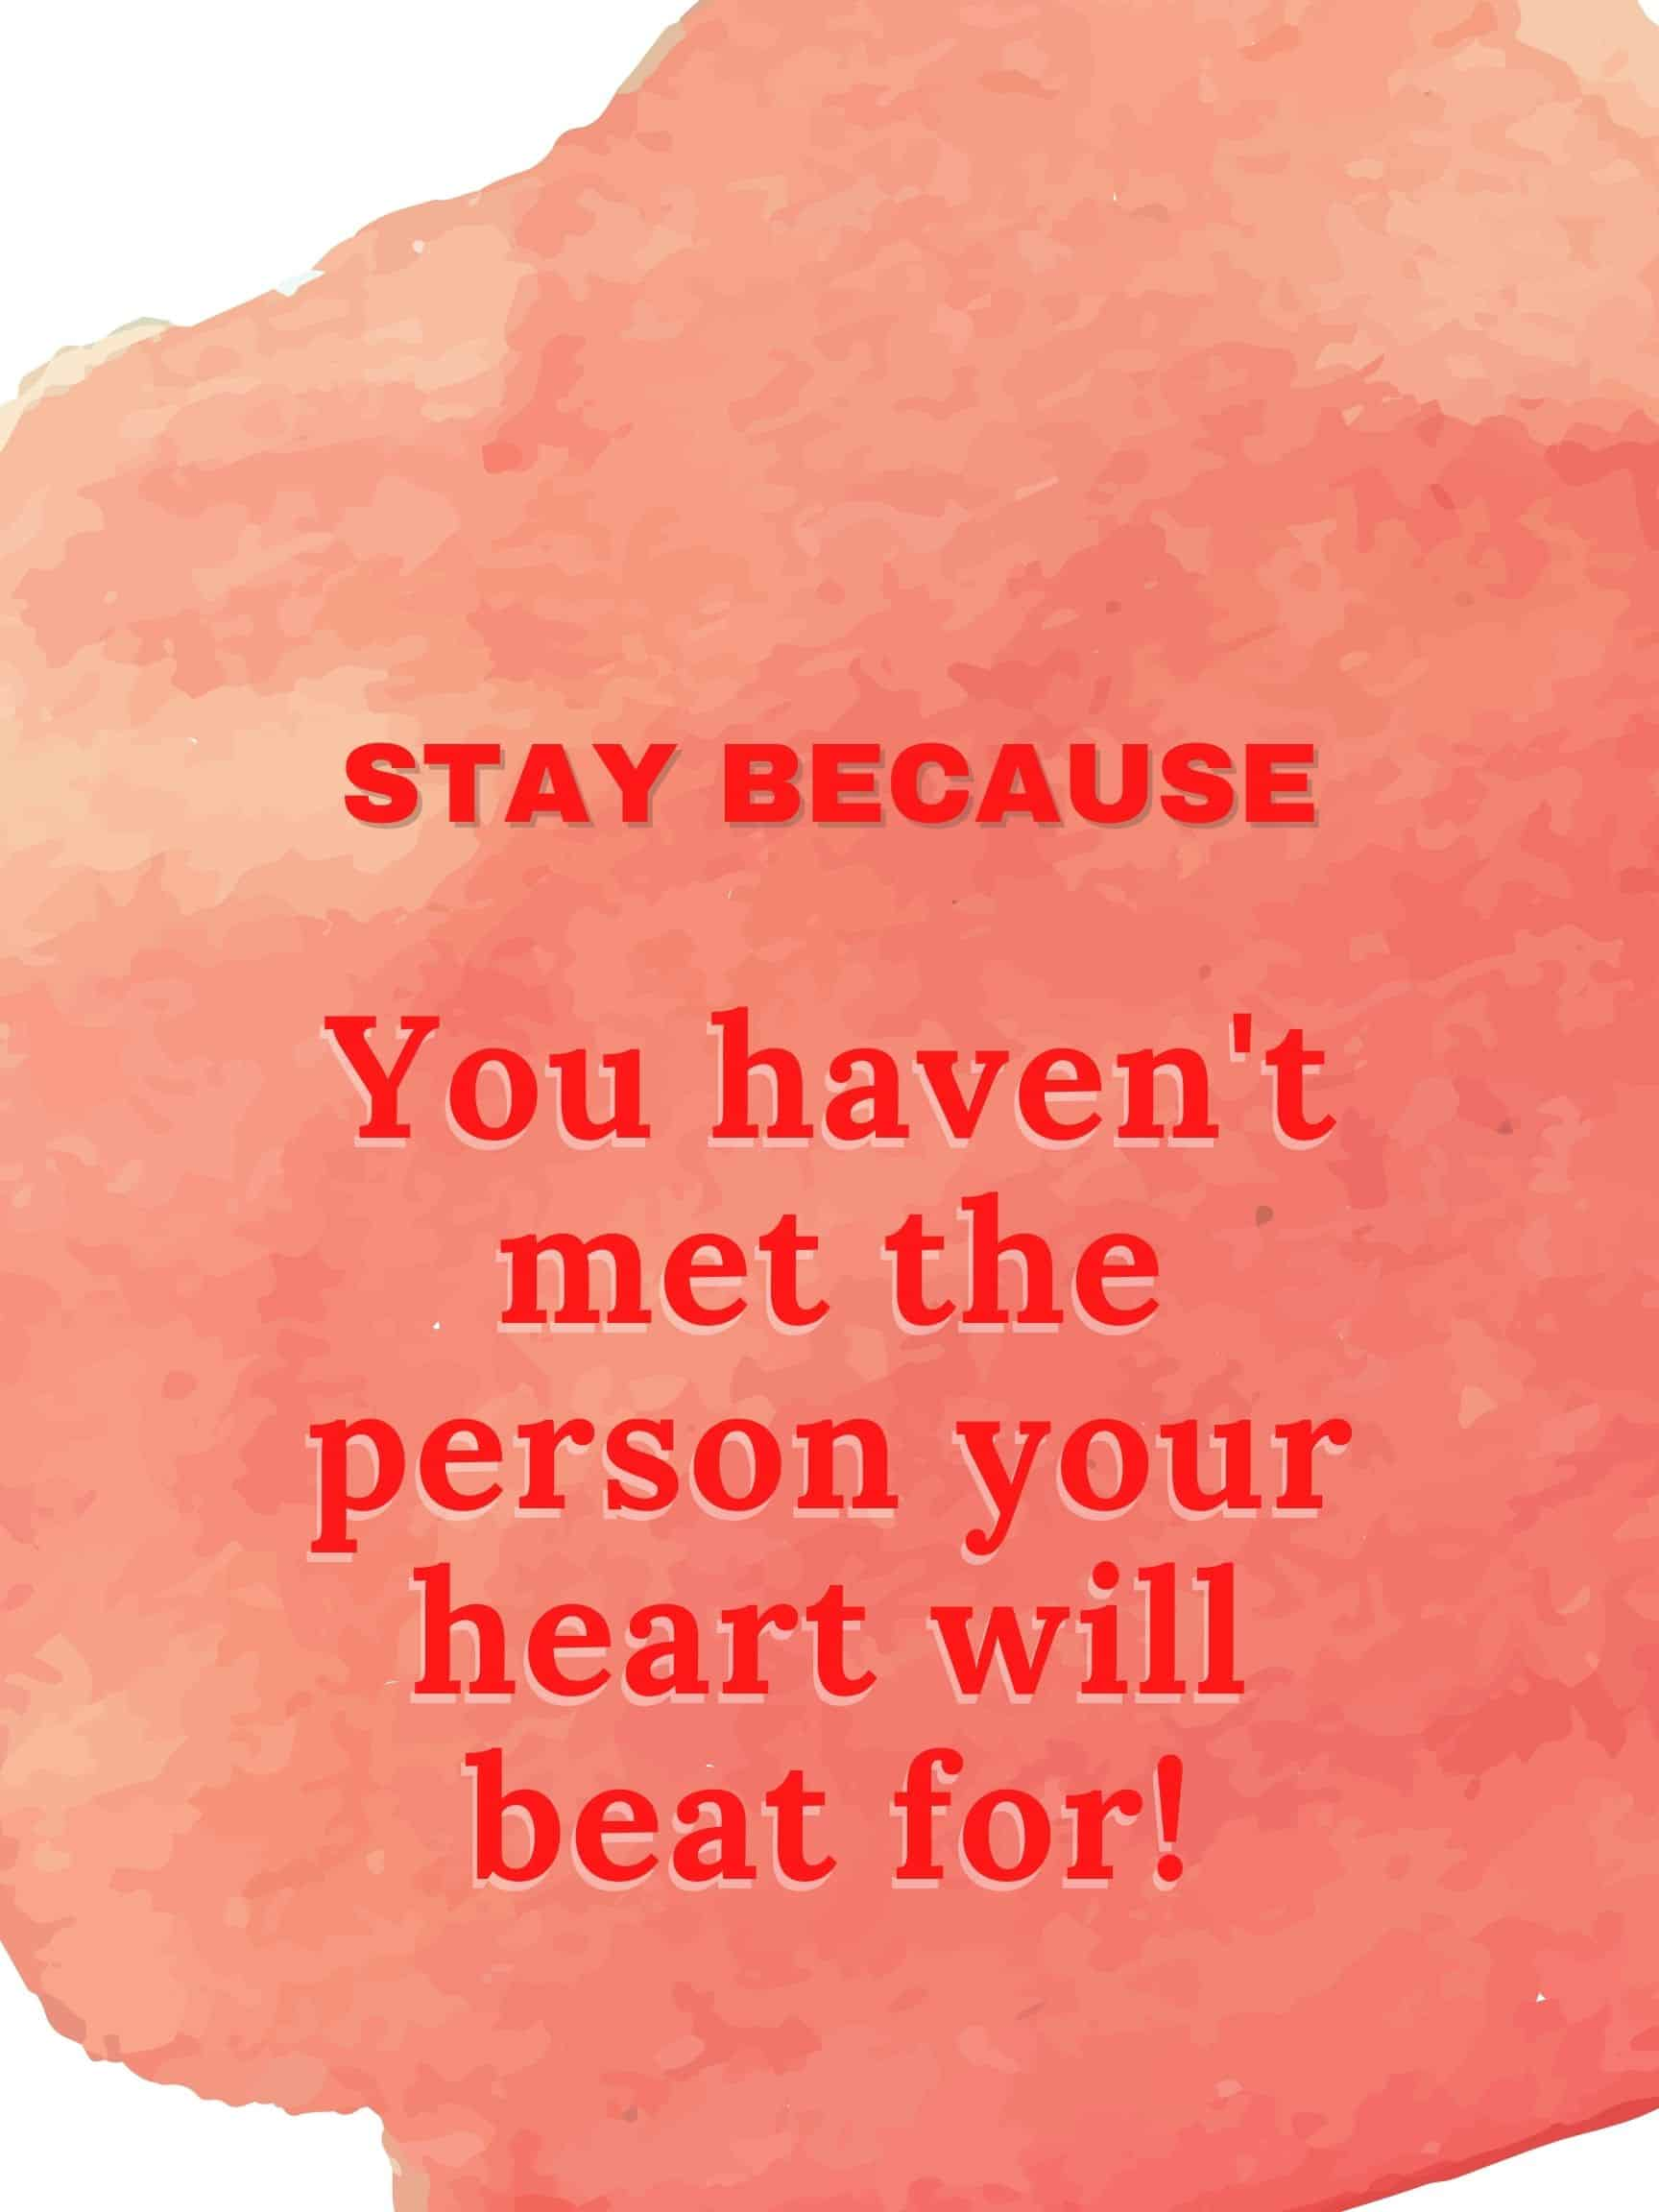 Stay because you haven't met the person your heart will beat for. #StayBecause